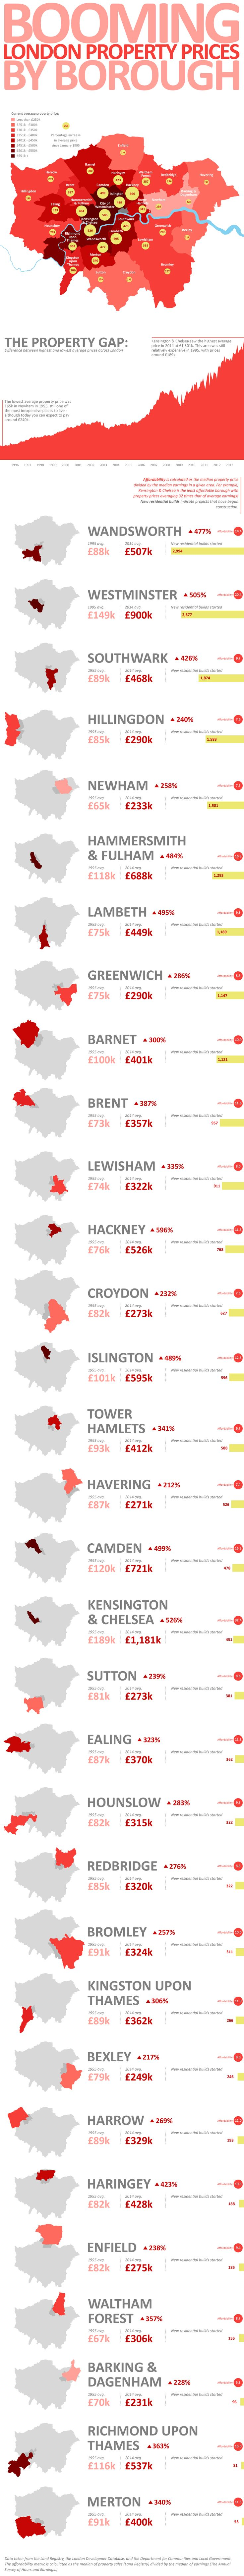 London property prices are now at an all-time high, and look set to continue rising. We've collated data from the Land Registry, the London Development Database, and the Department for Communities and Local Government to create this informative infographic. Discover which areas of London have the highest property price tags, which are up-and-coming, and check how your borought fares. #infographics